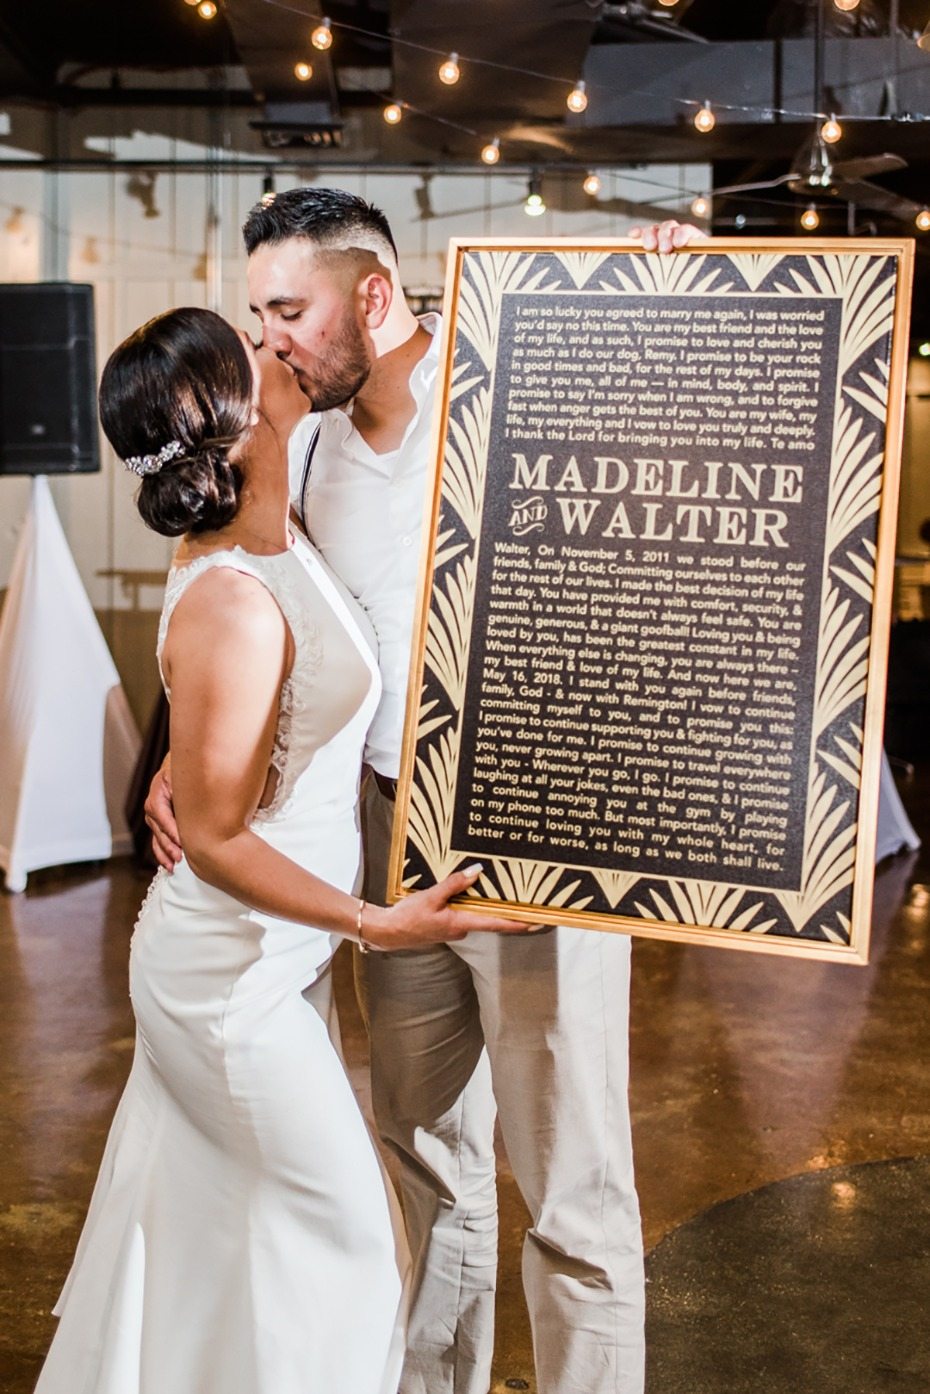 wedding vows with an art deco design